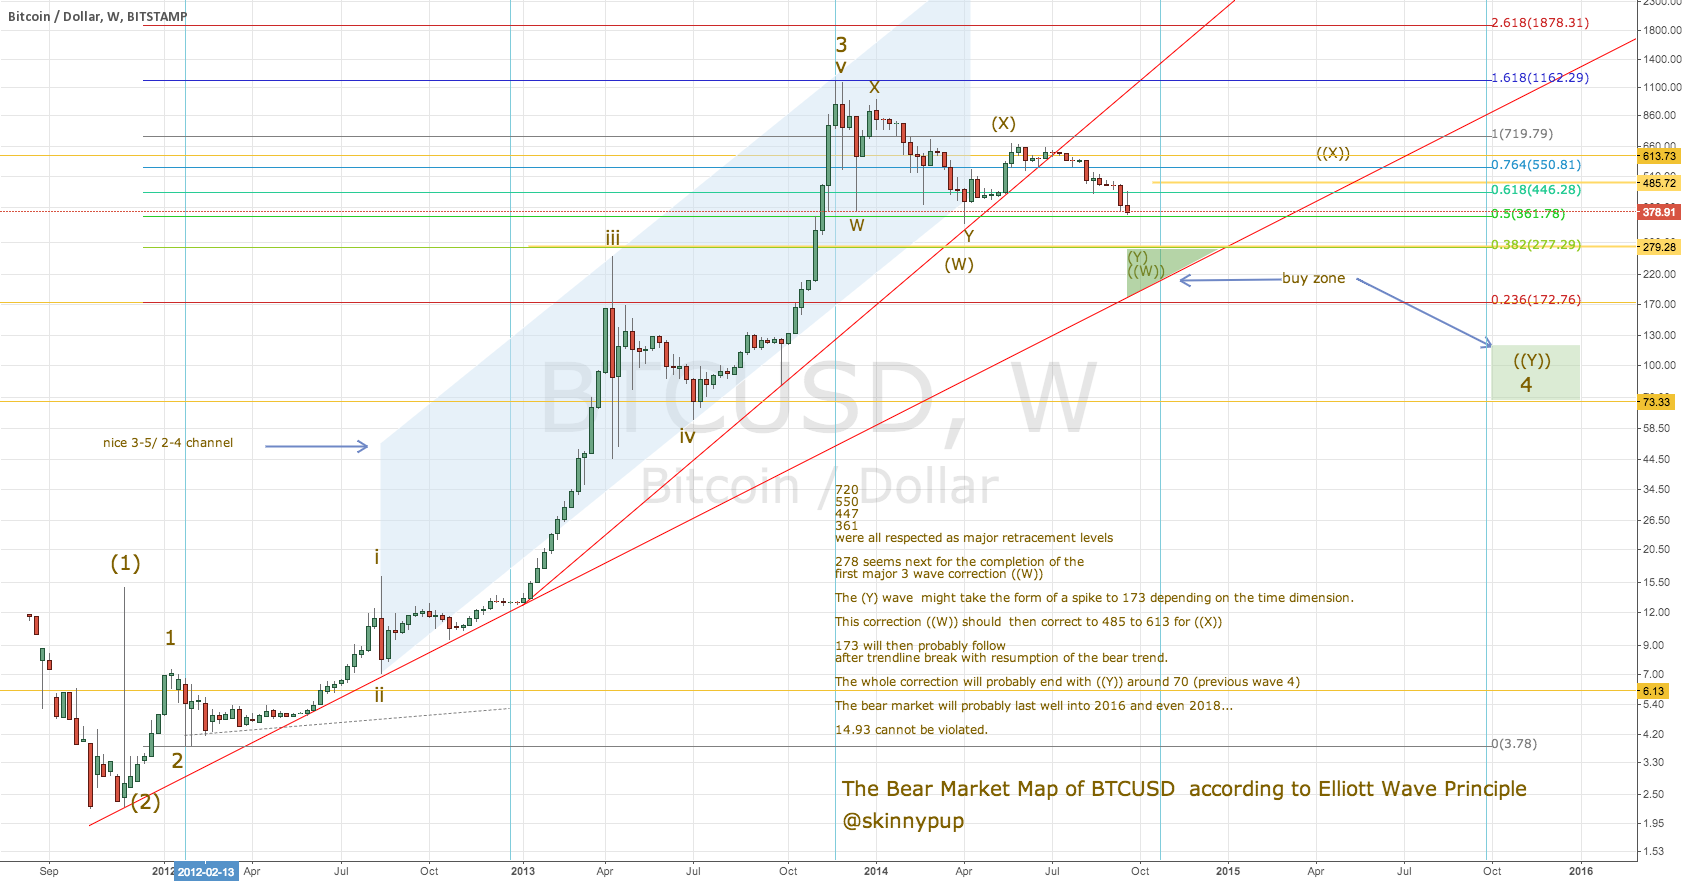 The Bear Market in BTCUSD targets 70s by 2016/2018